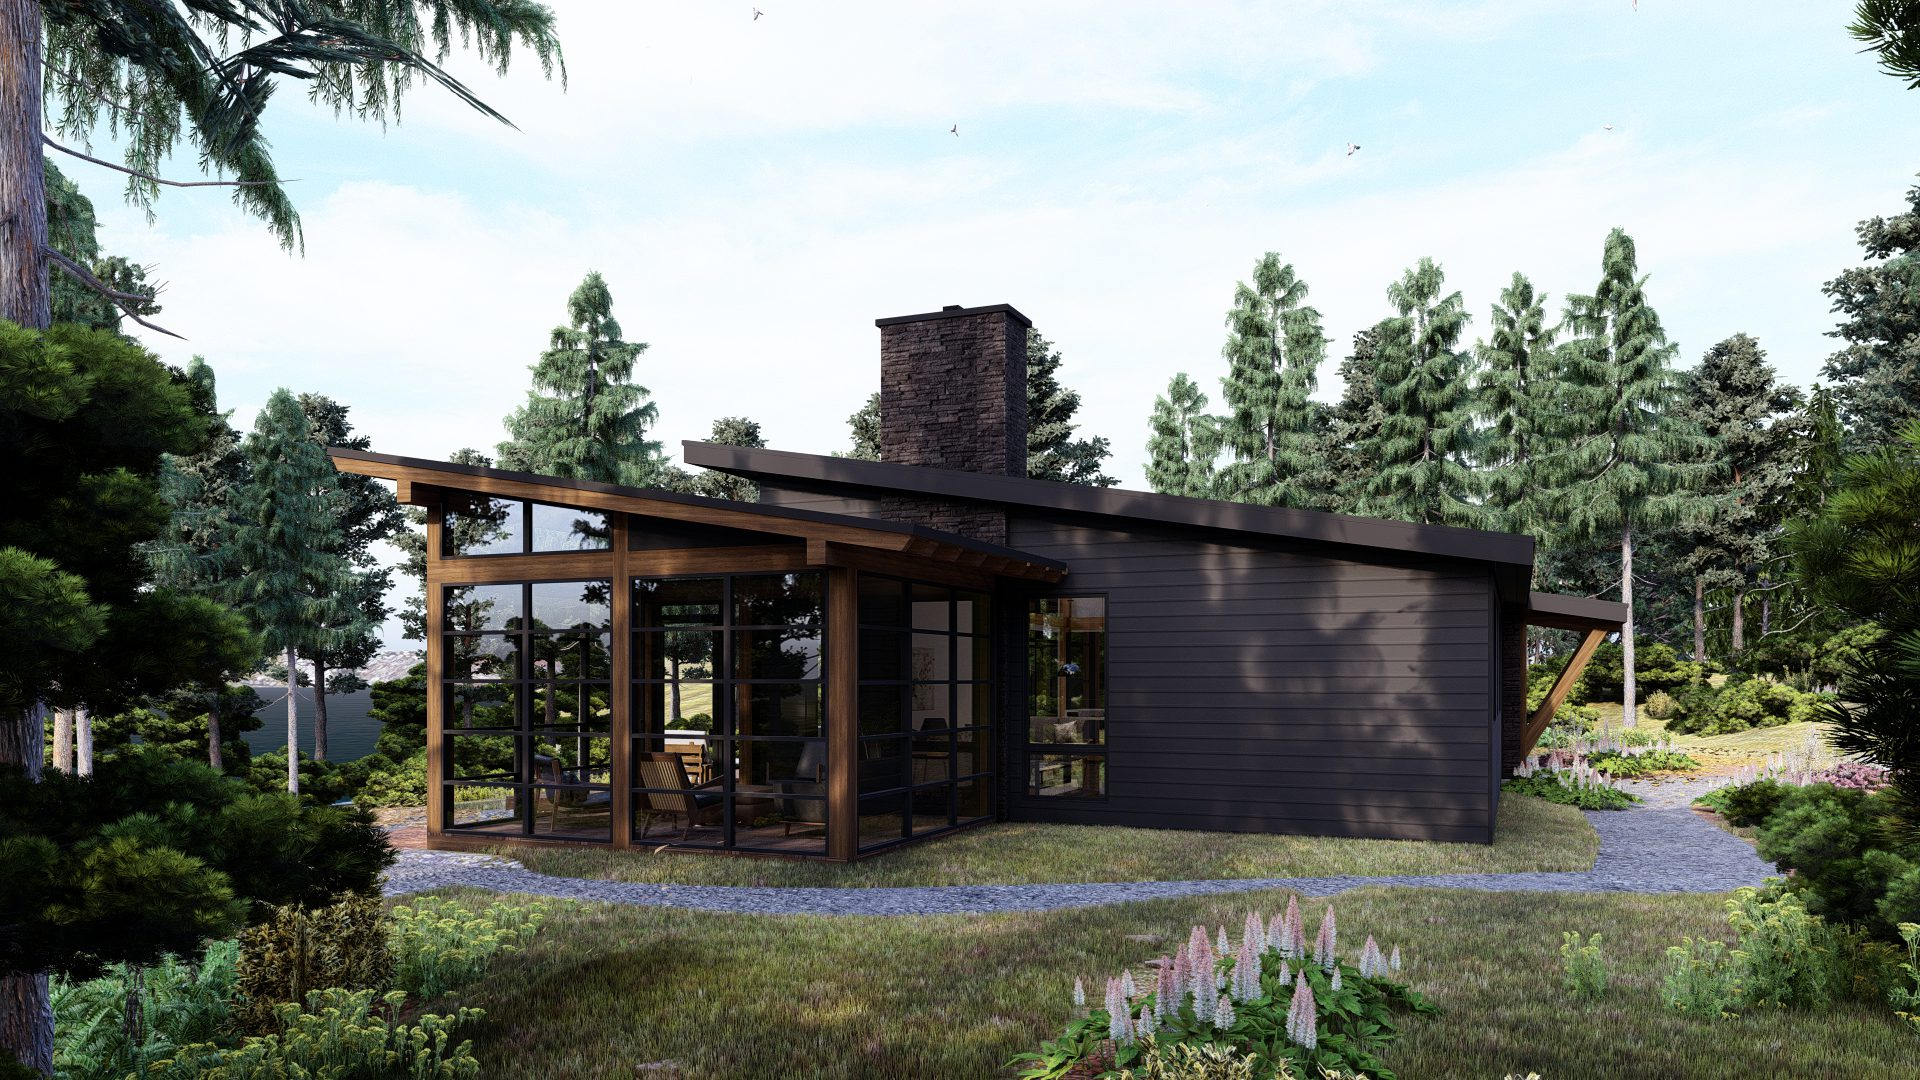 Normerica Timber Frames, House Plan, The Bayfield 3945, Exterior, Side, Porch